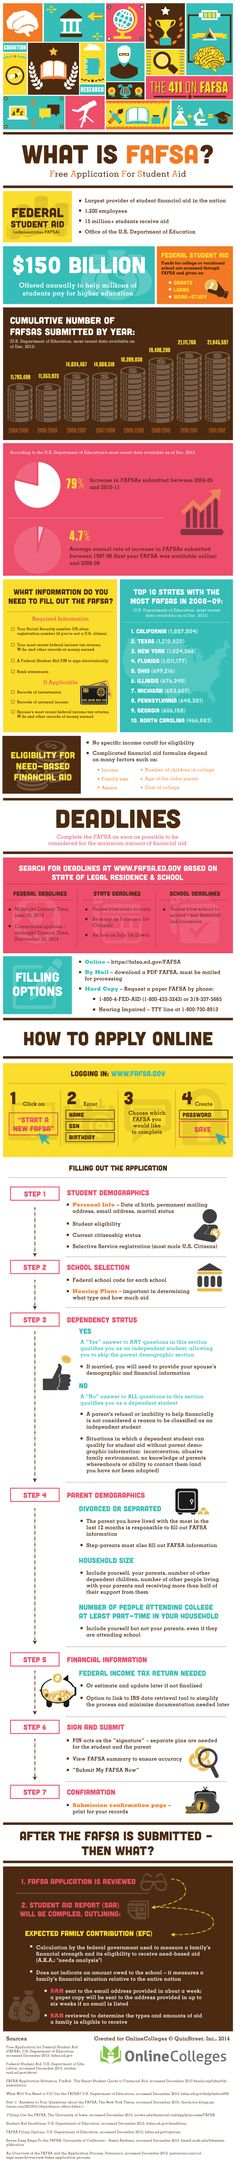 #FAFSA information #collegetips #students - financial aid information for…